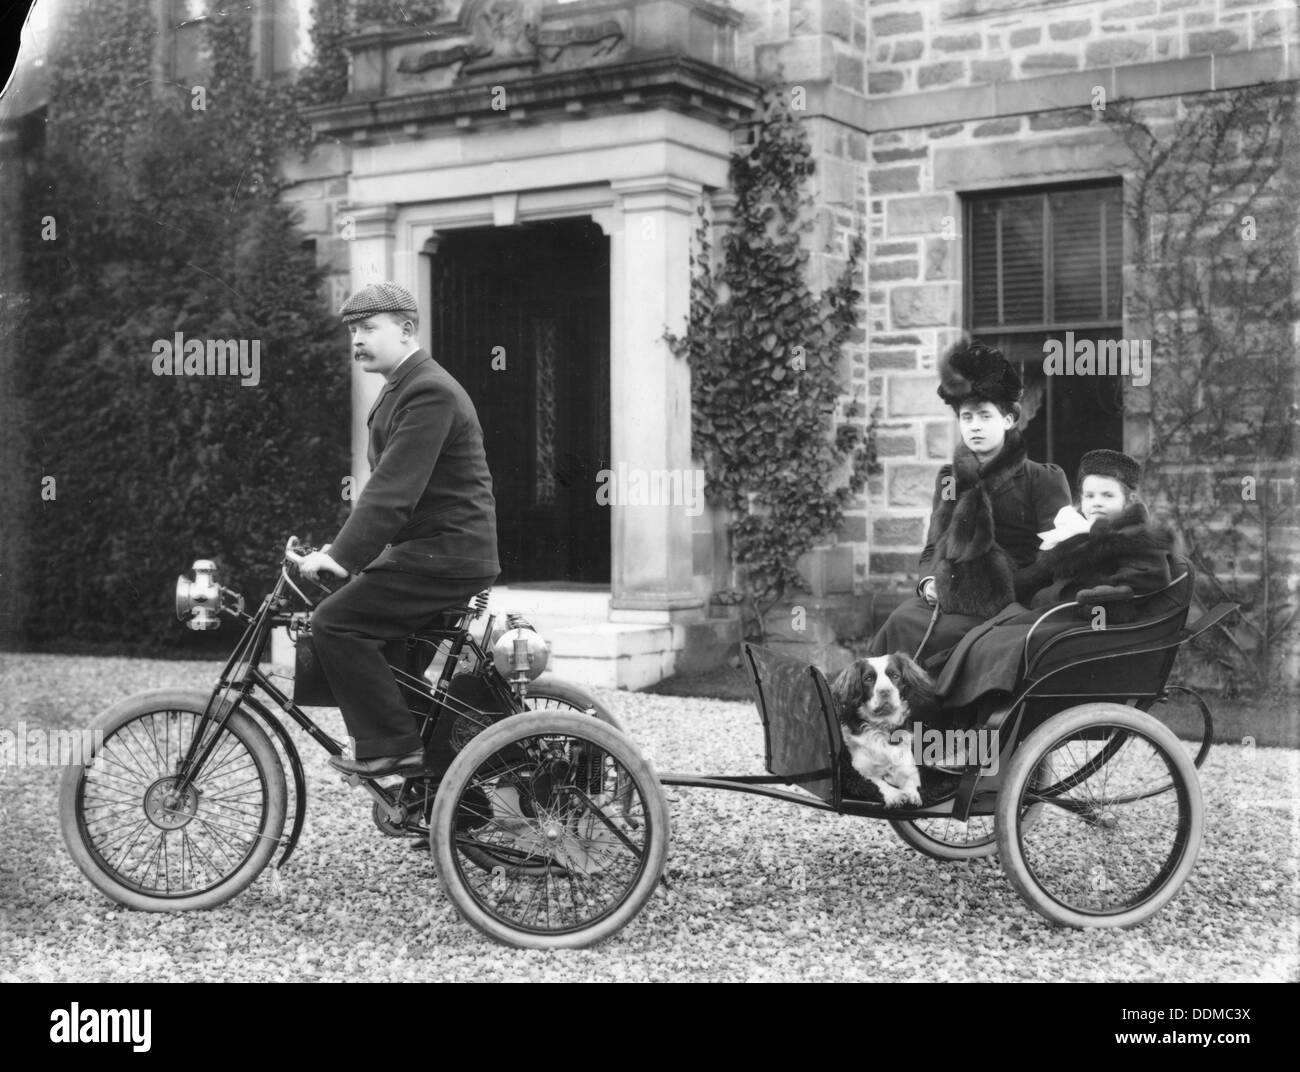 A De Dion tricycle. - Stock Image